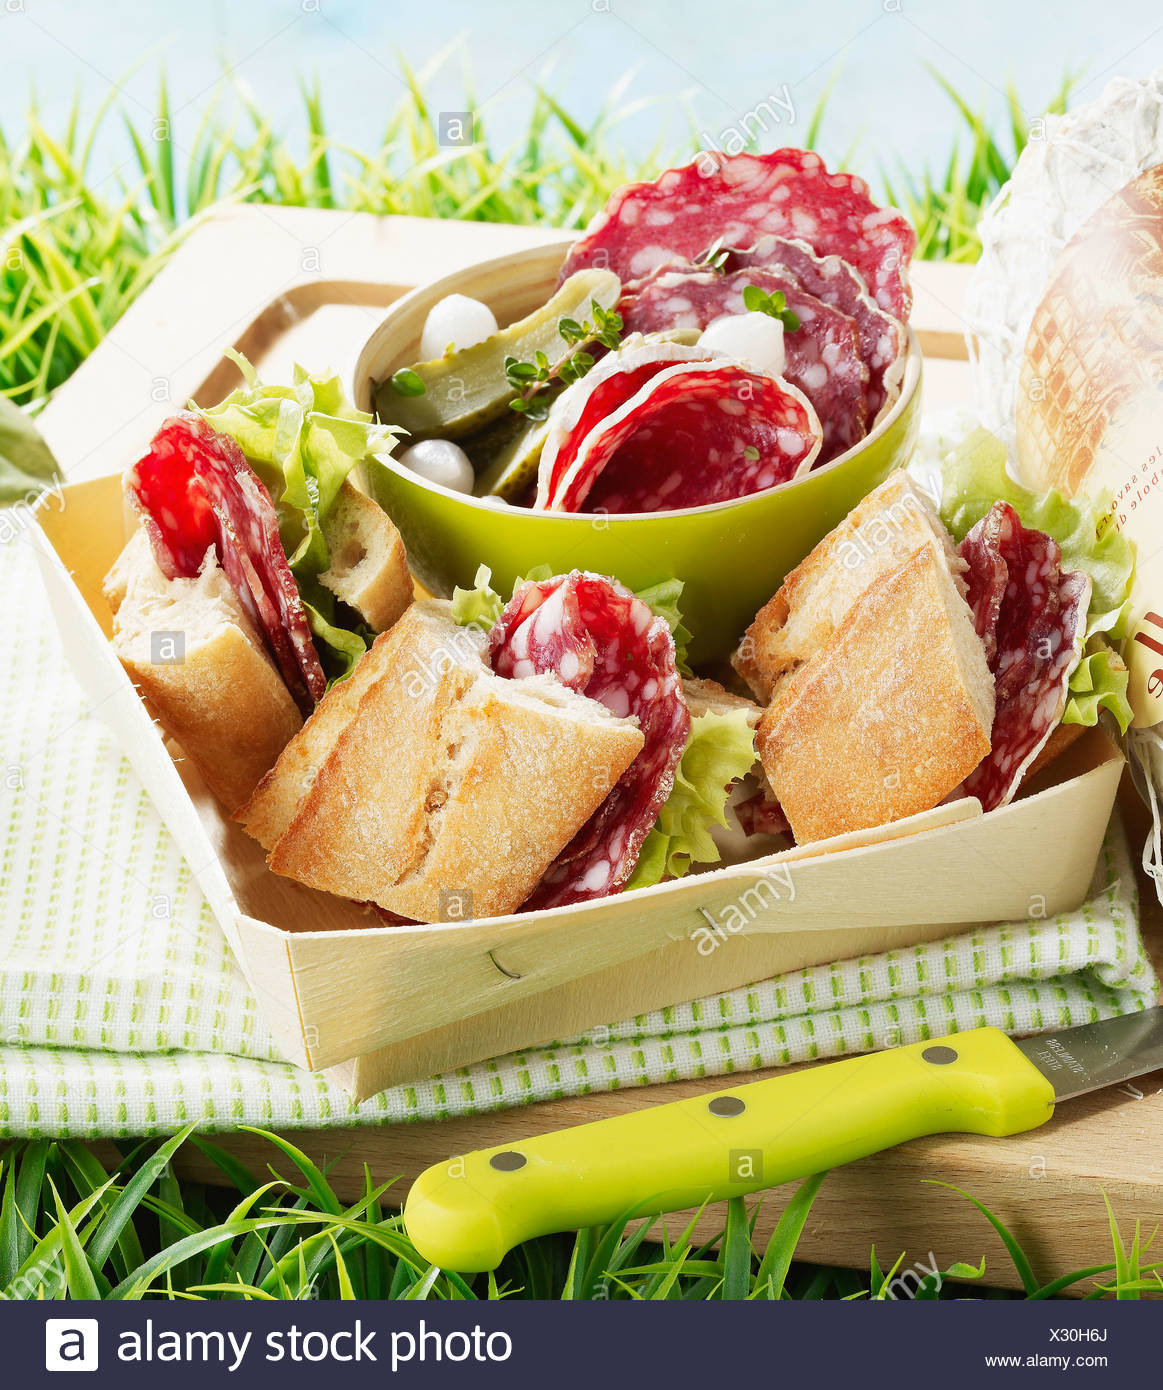 Picnic with dried sausage sandwiches - Stock Image